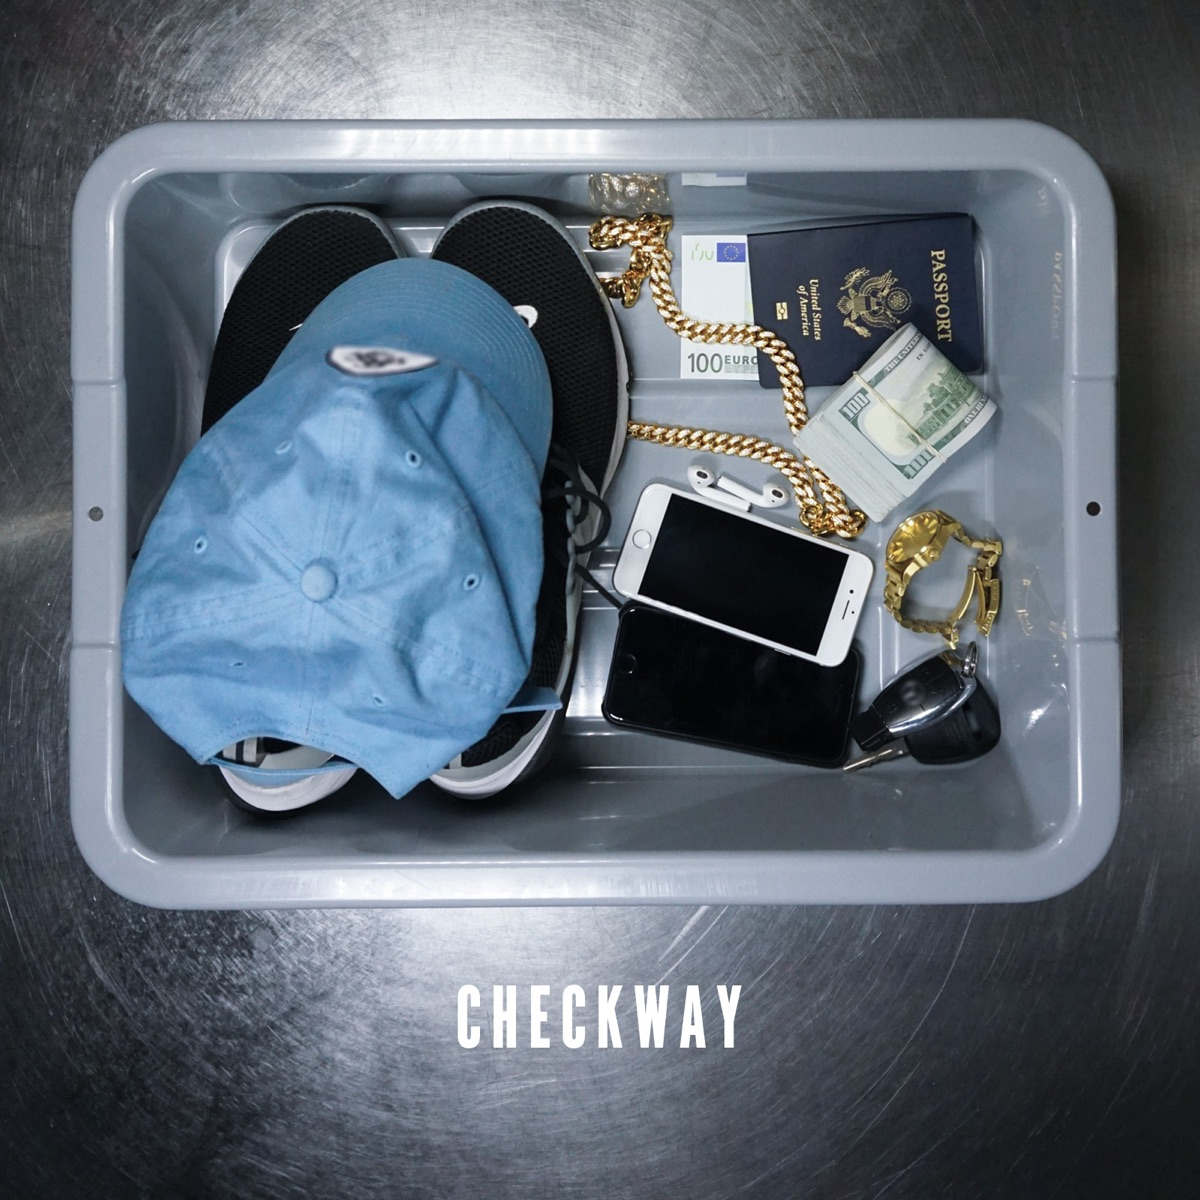 Art for Checkway by ERREON